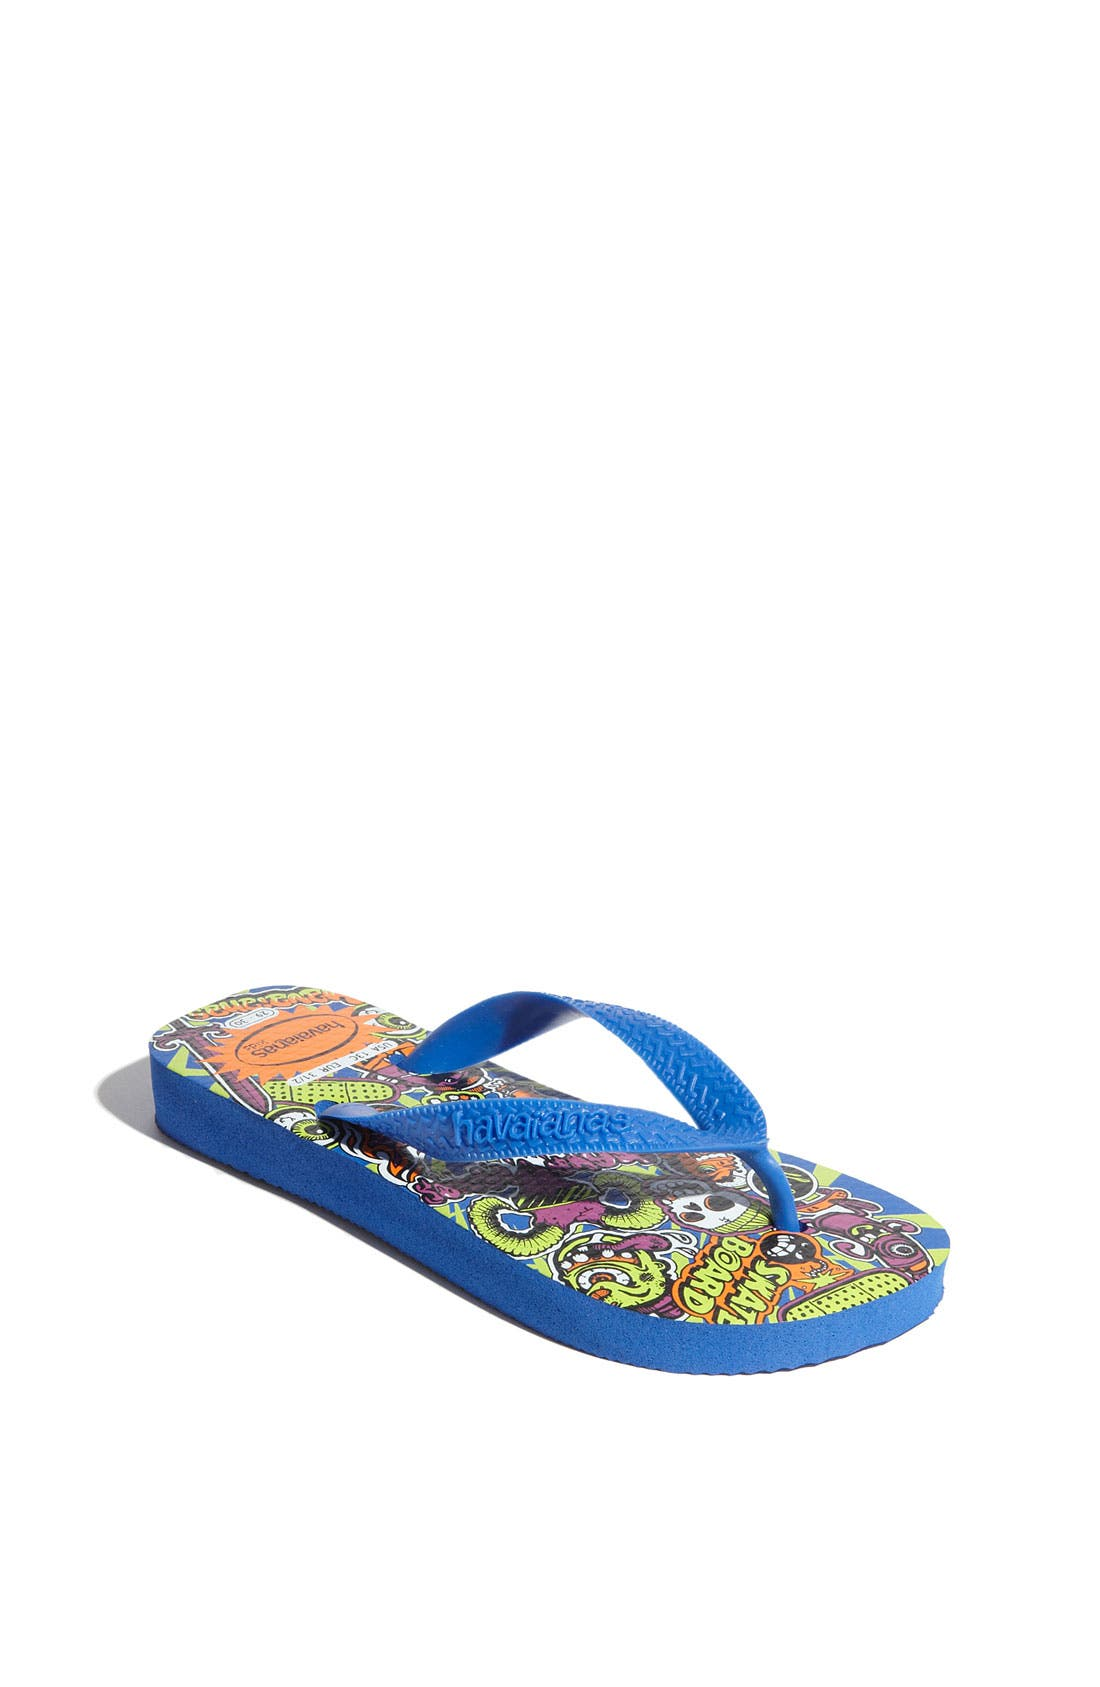 Main Image - Havaianas 'Skate' Sandal (Toddler & Little Kid)